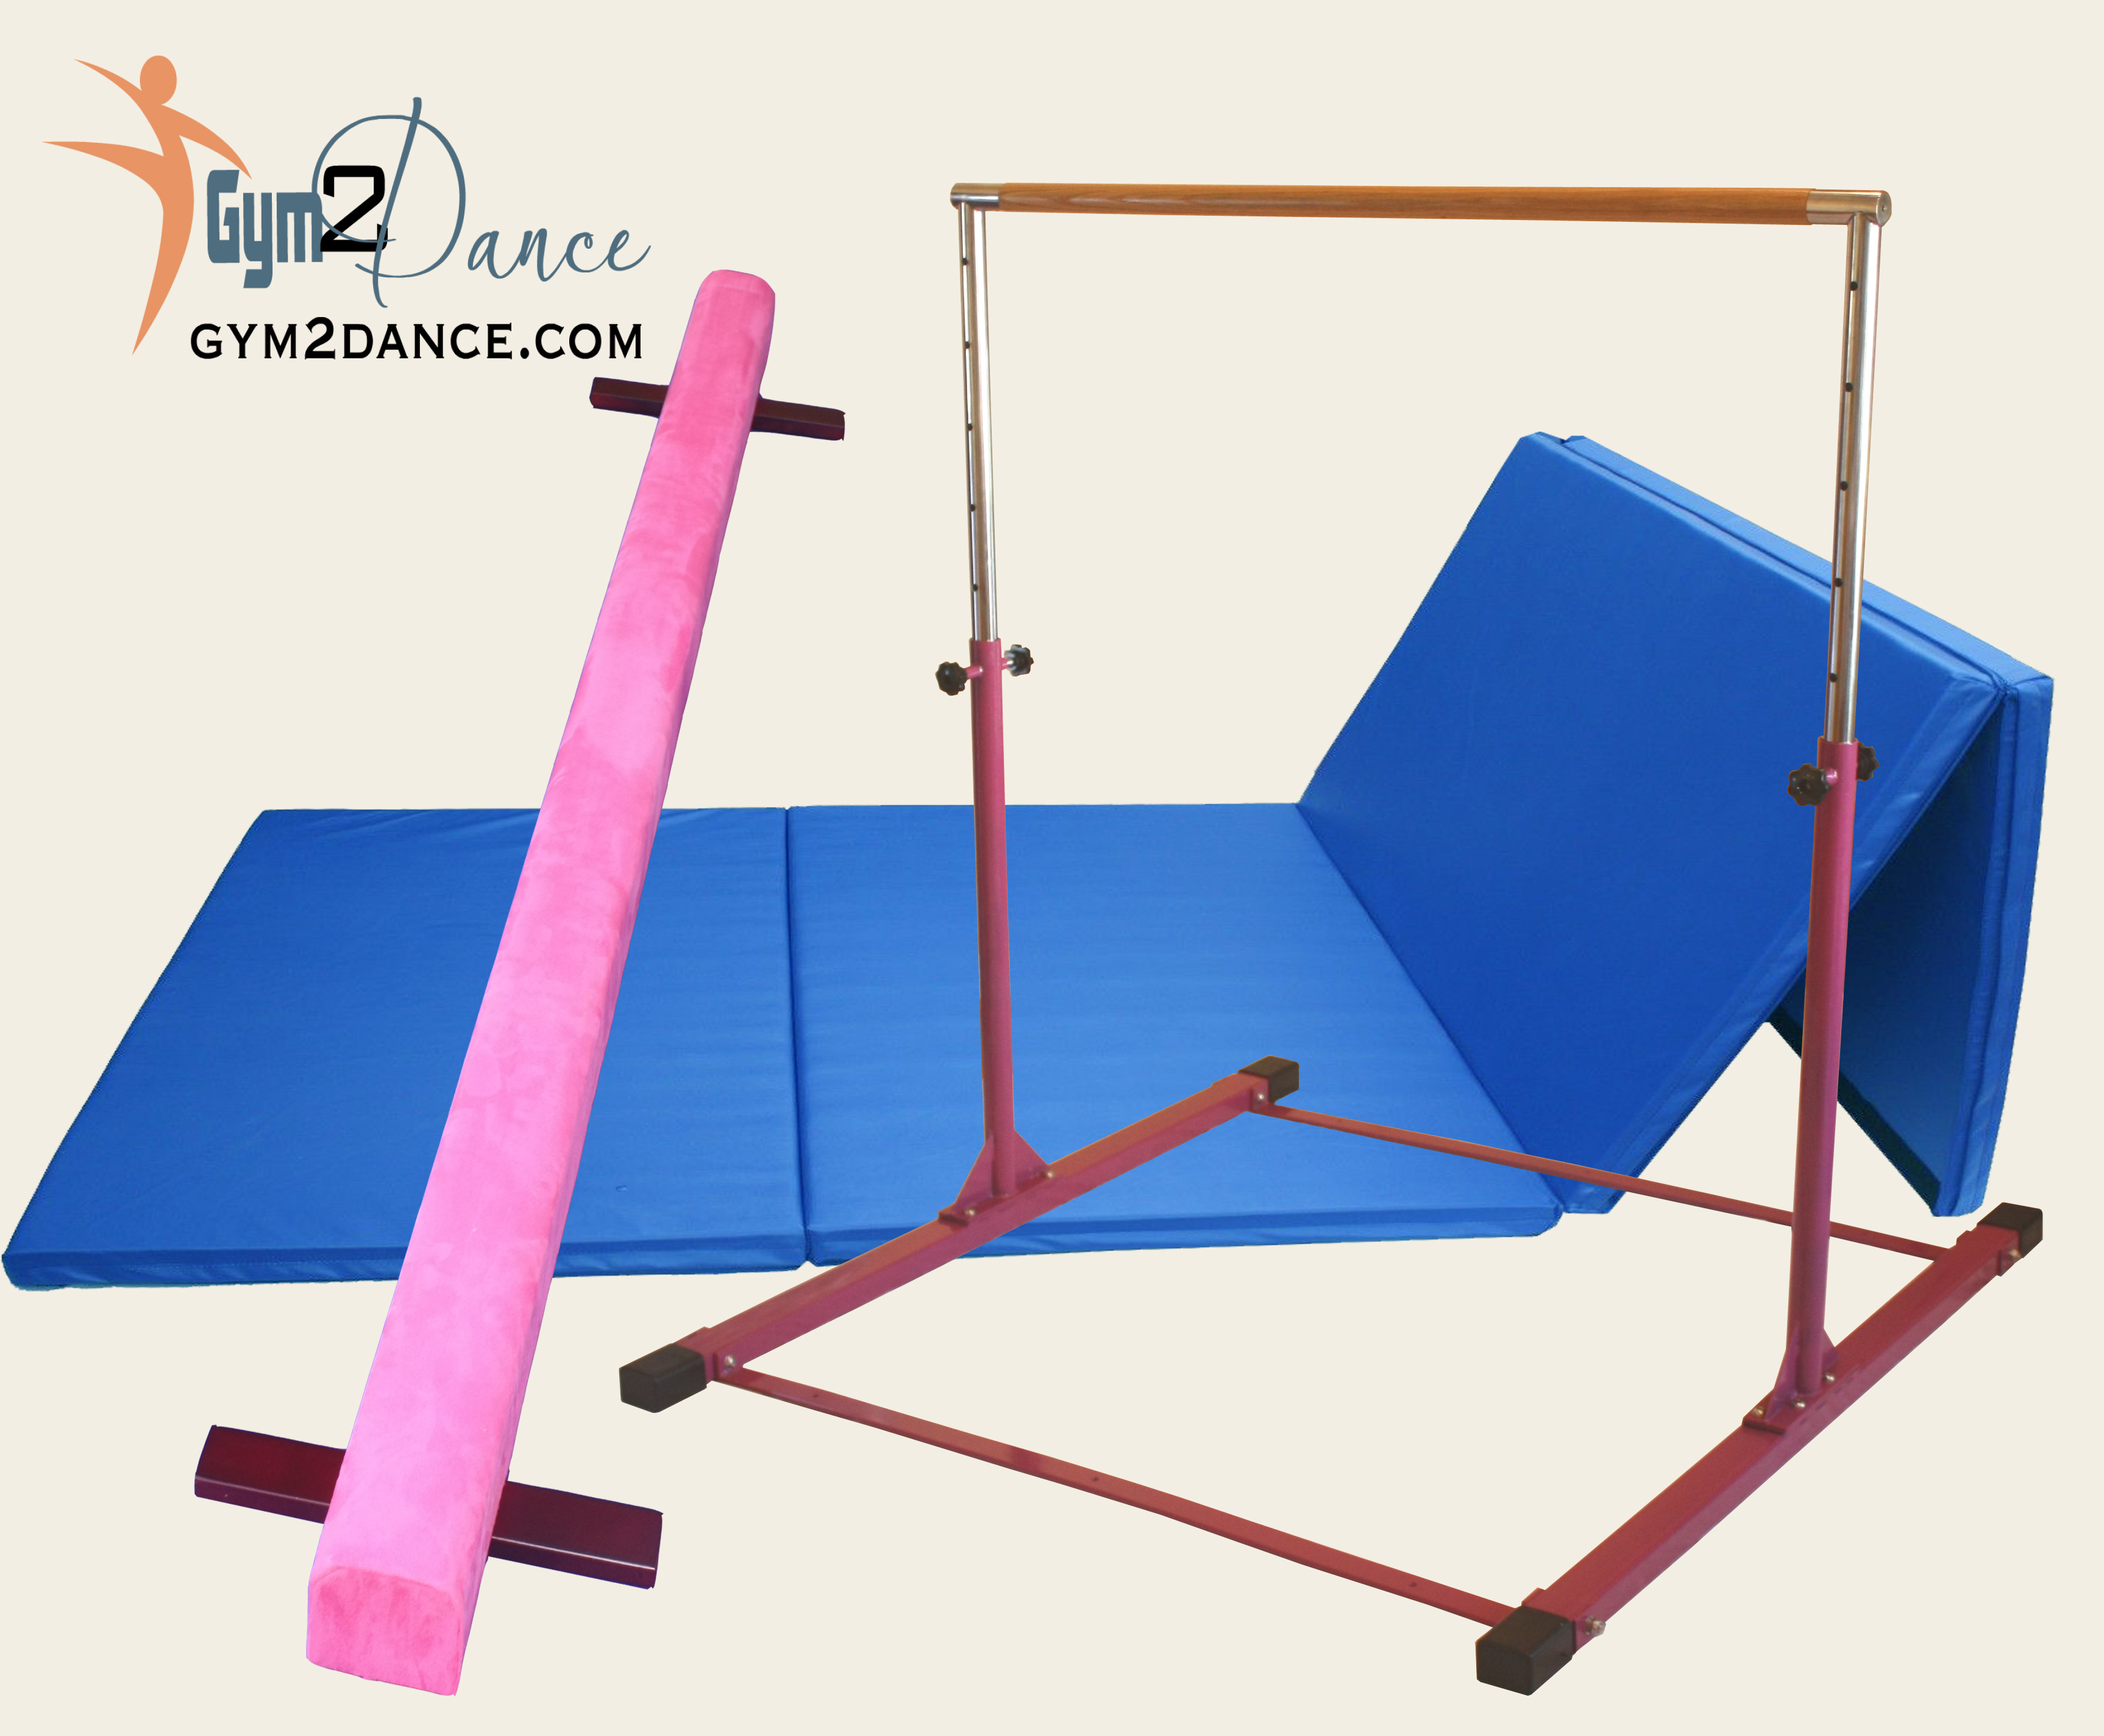 mat pin cheap gym ft gymnastics wedge long dance size com amazon incline mats